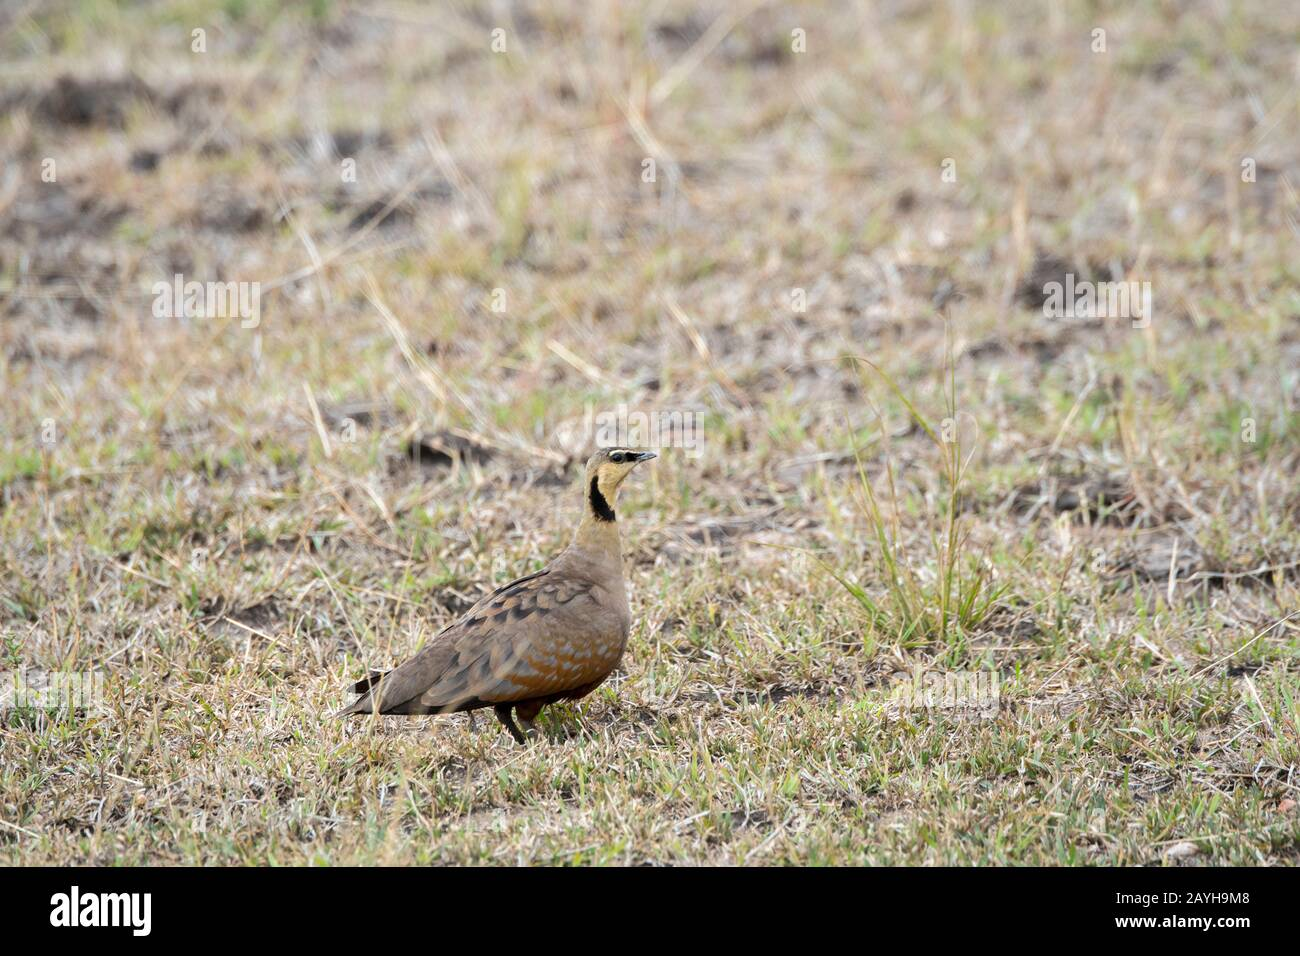 A yellow-throated sandgrouse (Pterocles gutturalis) is looking for food in the grasslands of the Masai Mara National Reserve in Kenya. Stock Photo